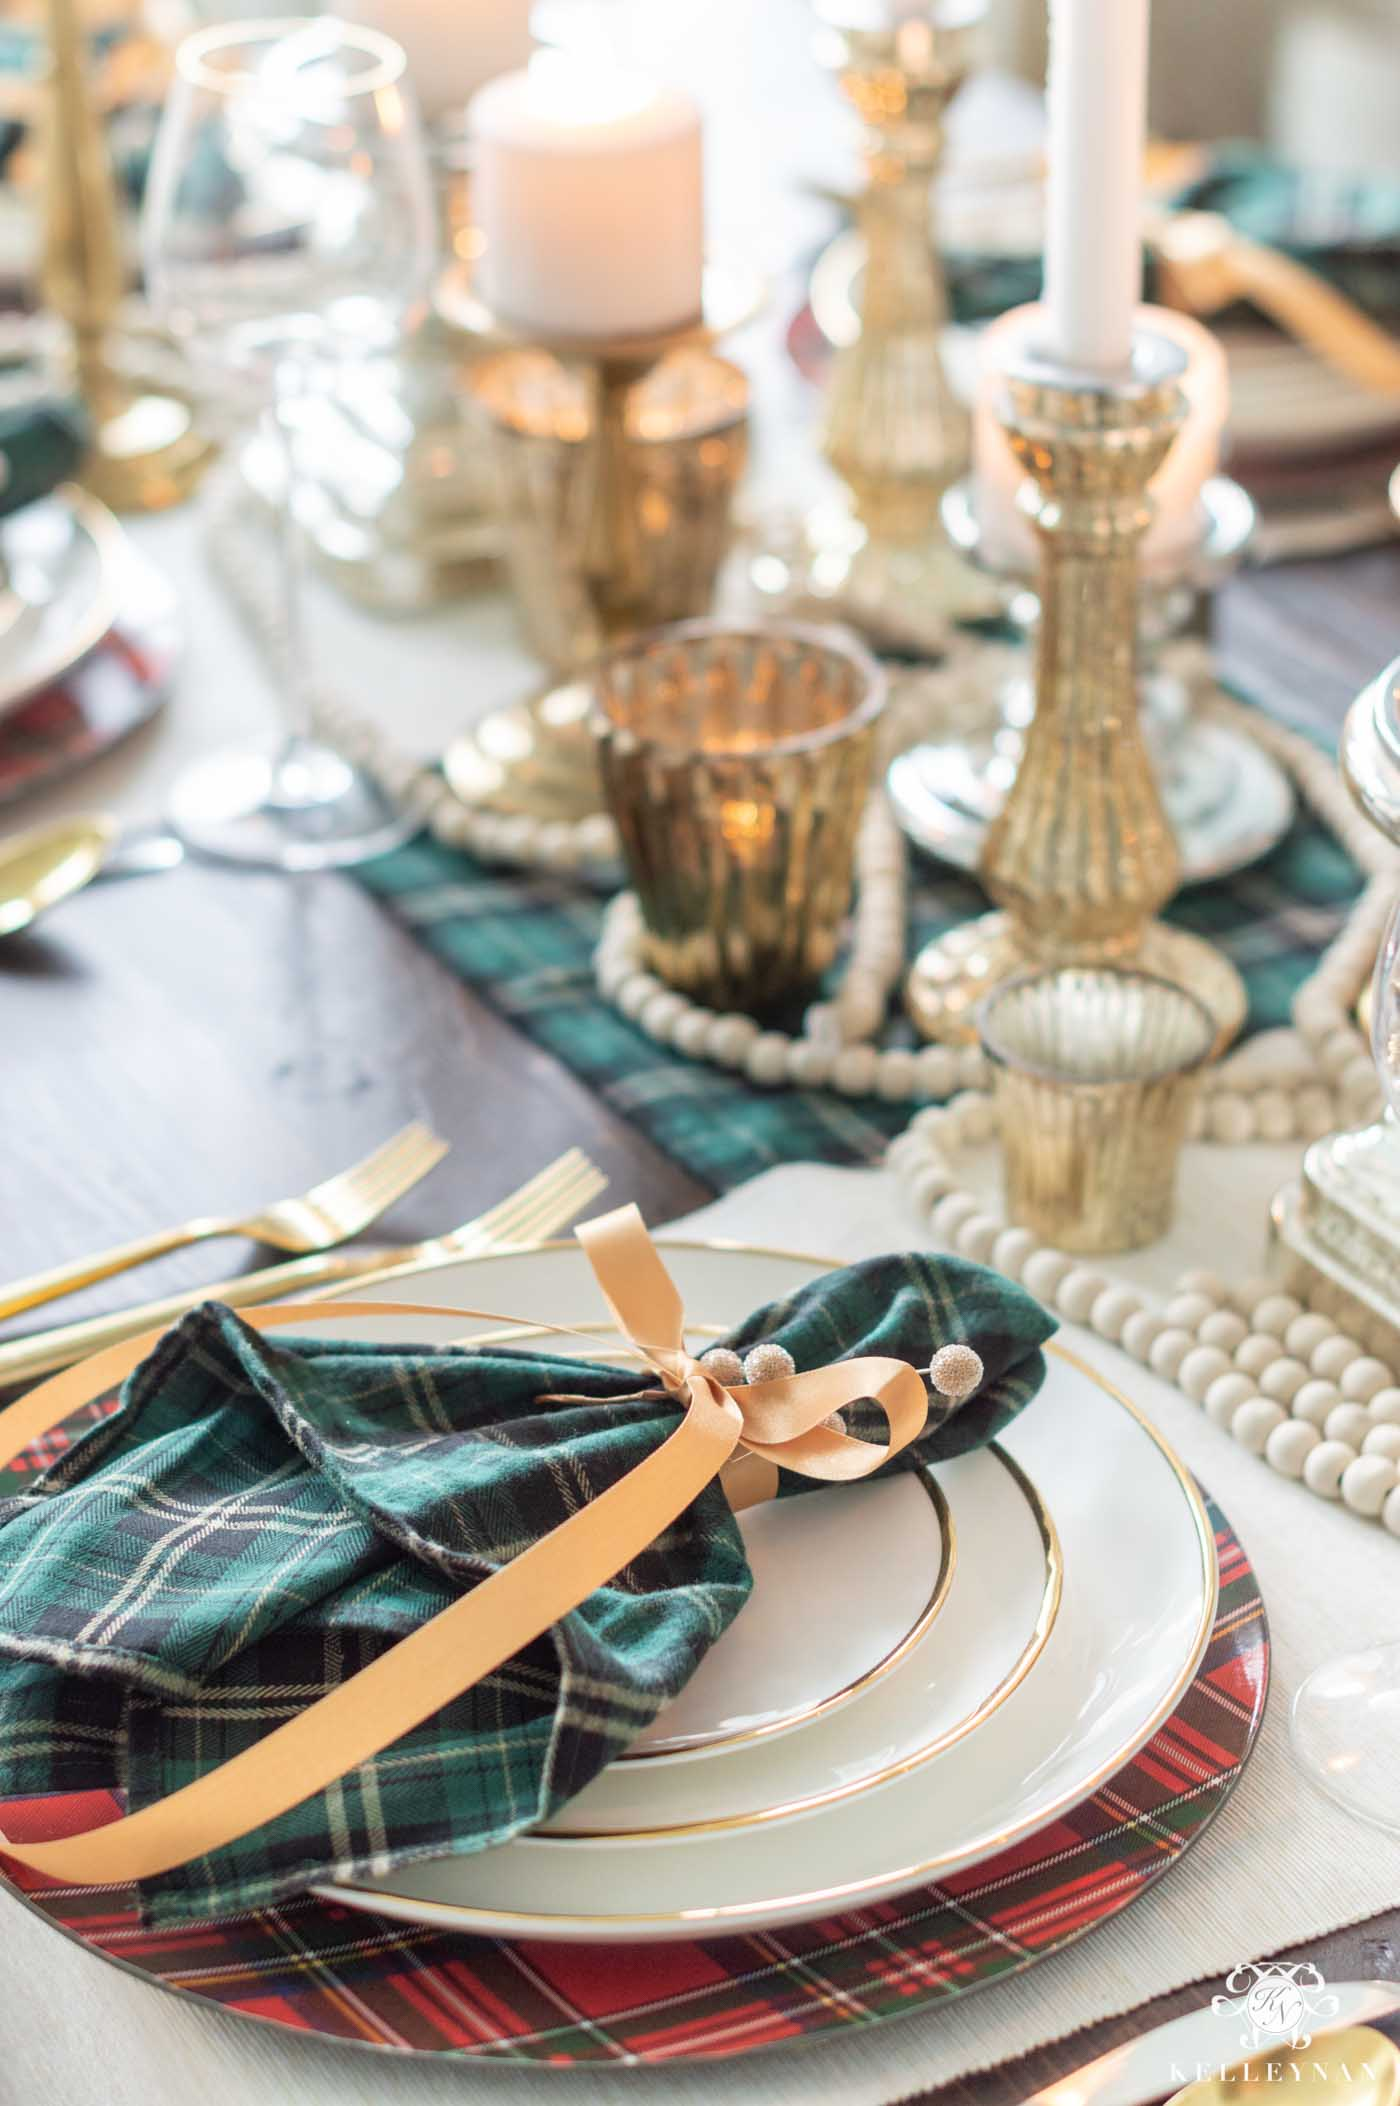 Plaid Christmas Table Decorations with Candle Centerpiece